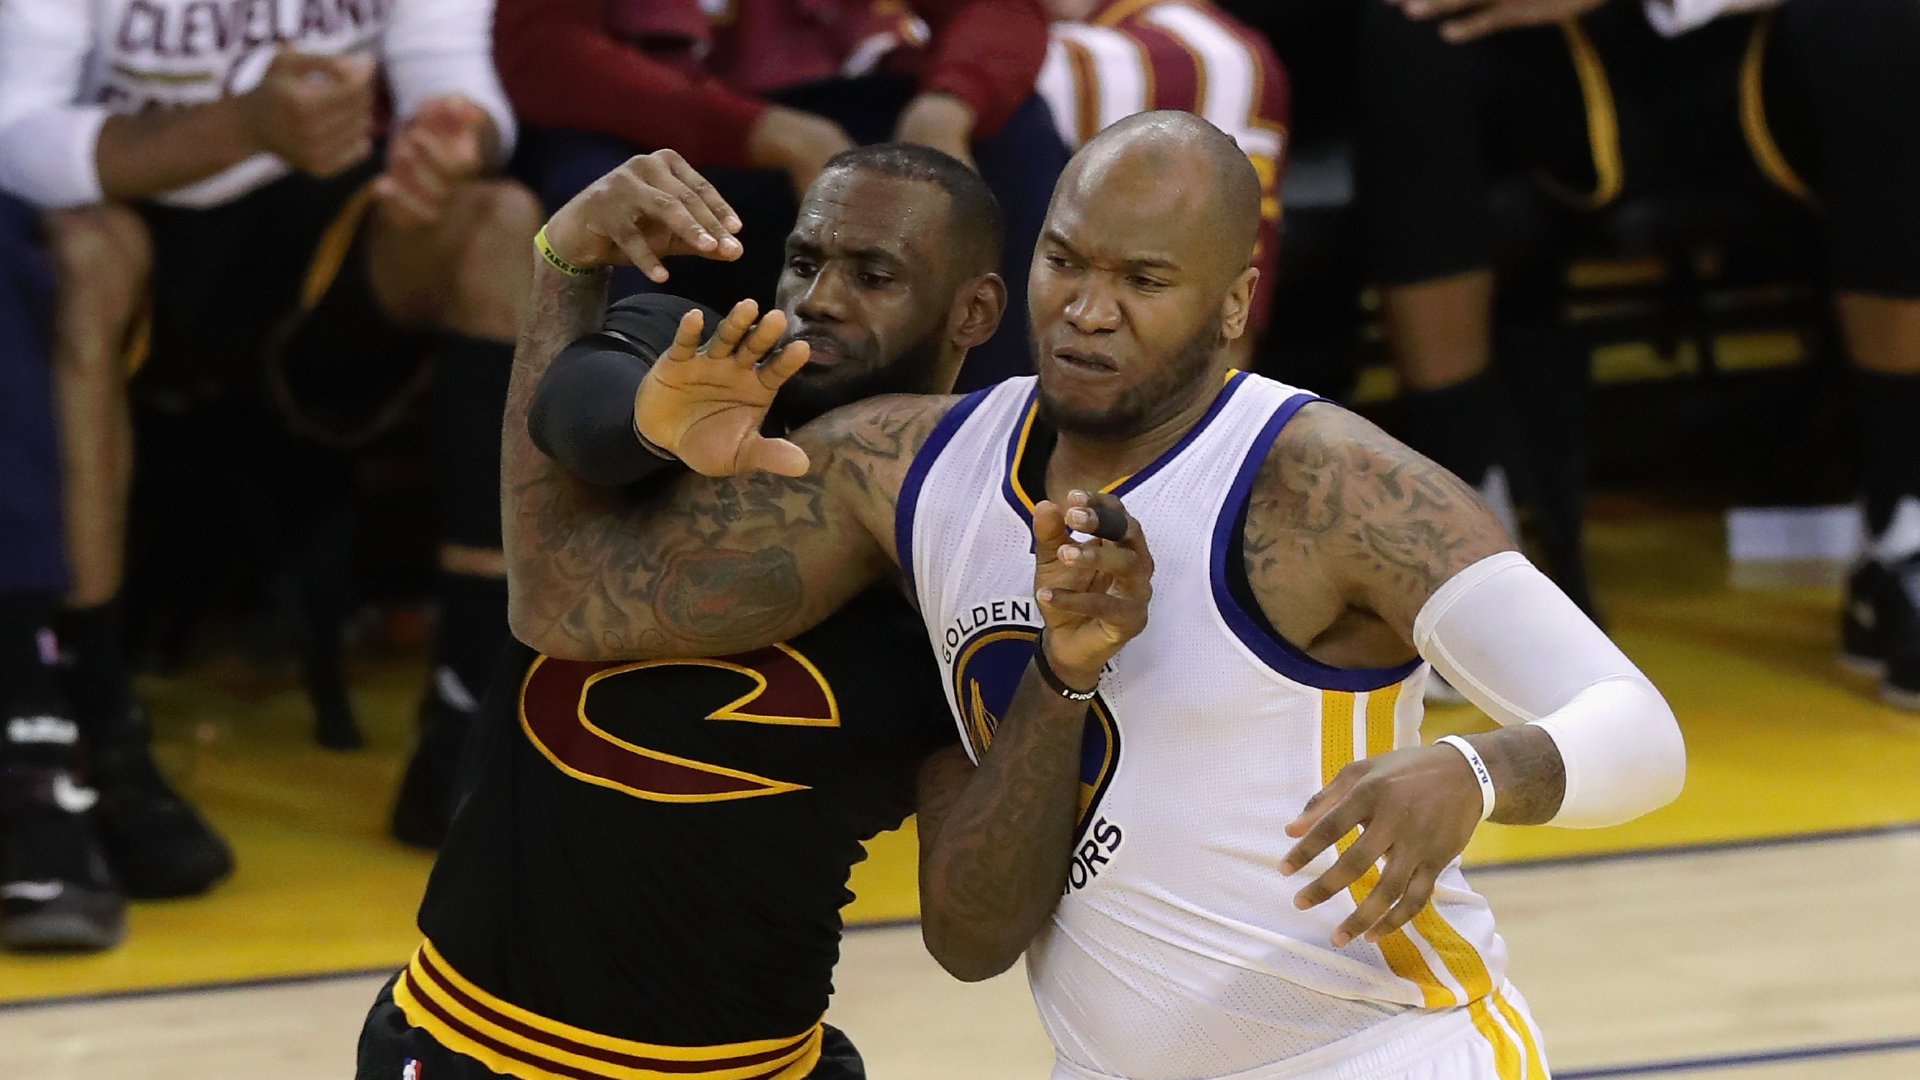 Mo Speights subtweets LeBron James after NBA Finals win, then turns account private